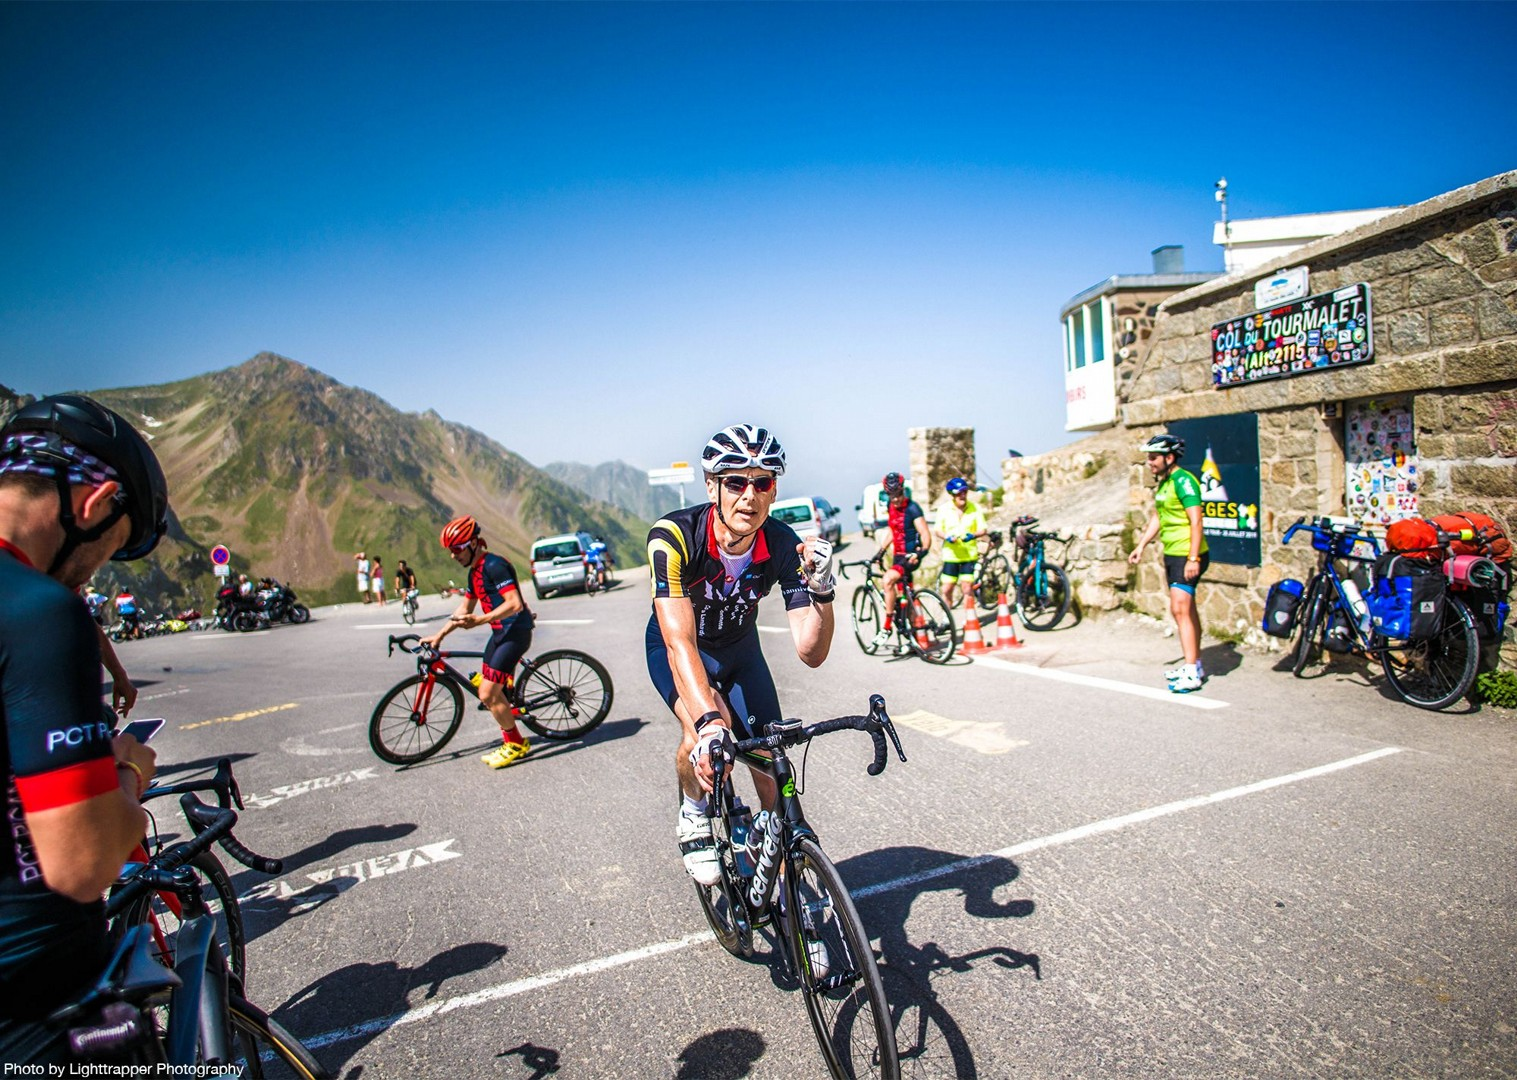 celebration-cycling-holiday-bike-pyrenees-saddle-skedaddle.jpg - France - Trans Pyrenees Challenge - Guided Road Cycling Holiday - Road Cycling